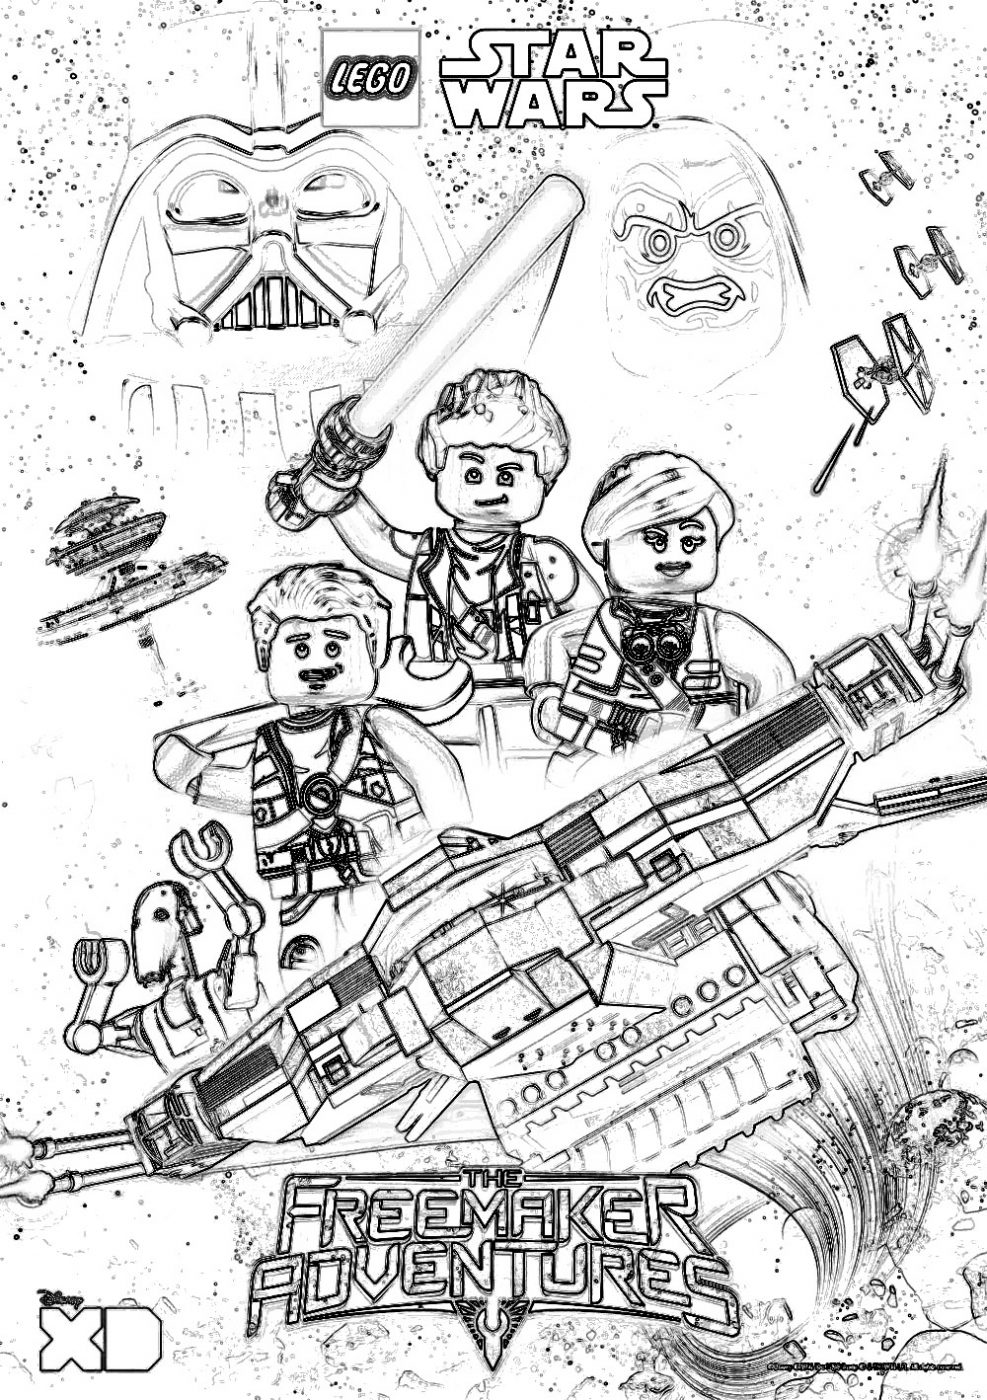 lego_sw freemakeradventures coloring page - Star Wars Coloring Books